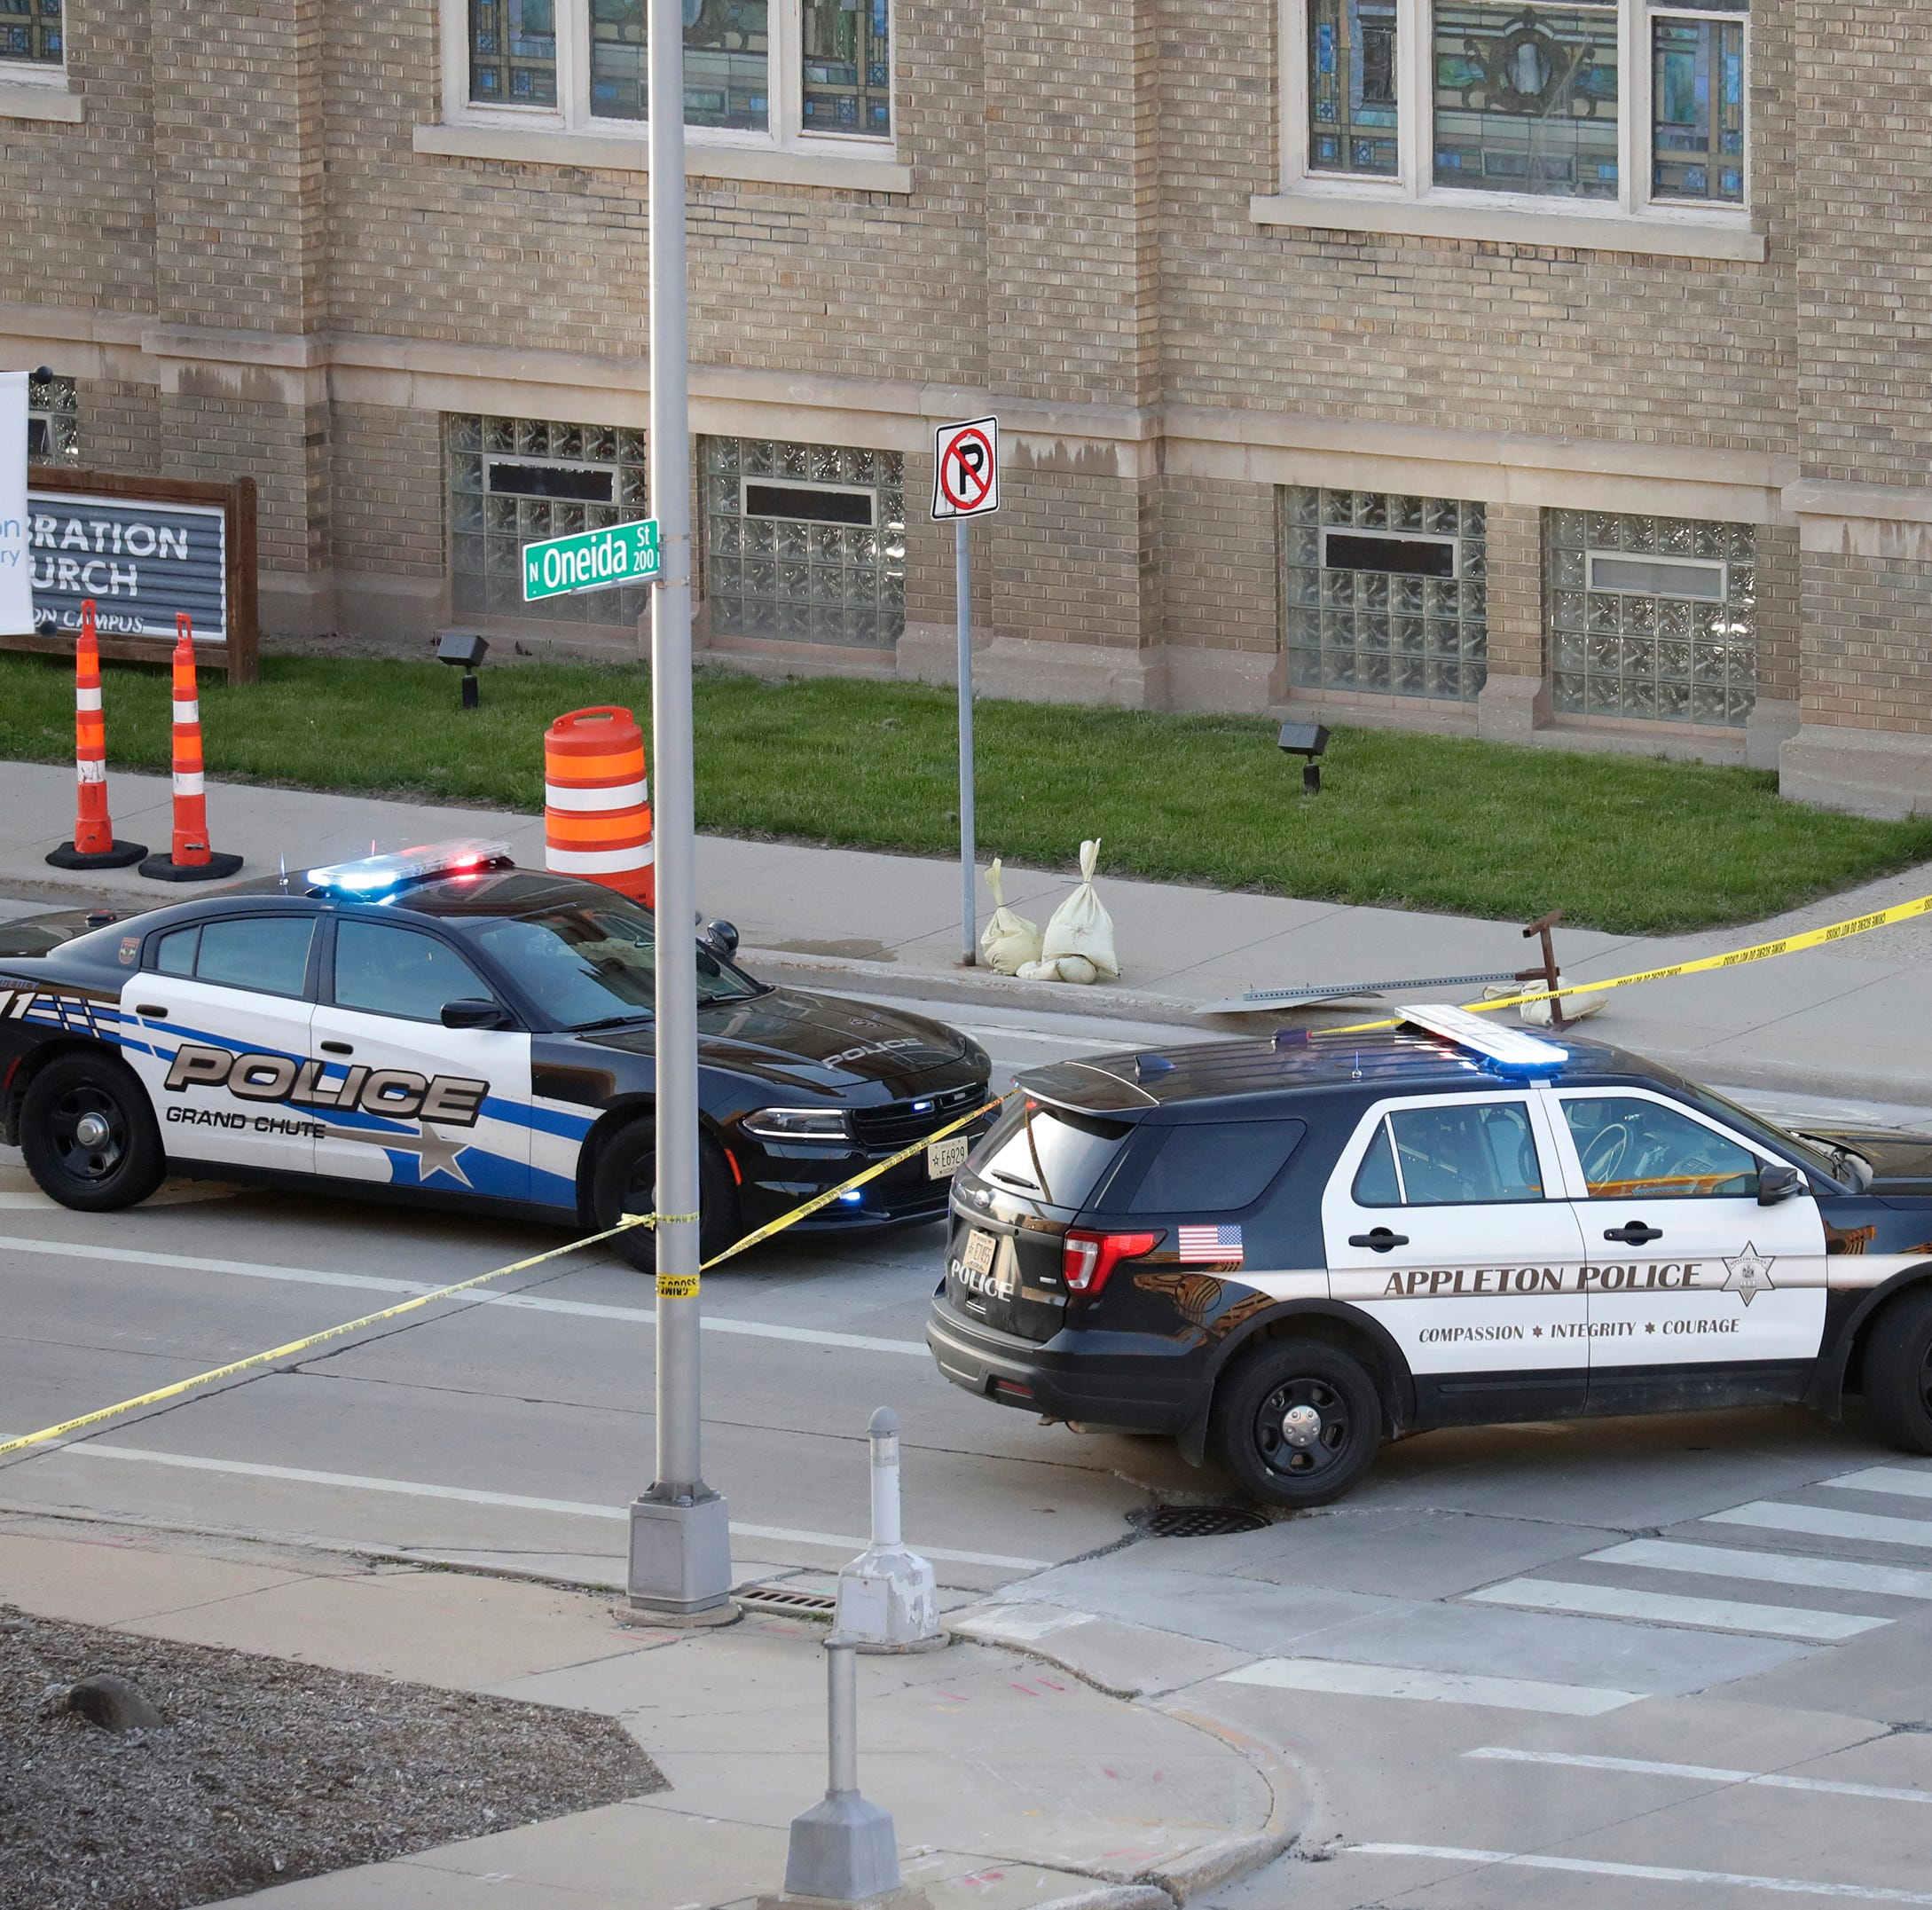 Appleton firefighter killed in Wednesday shooting; police officer, 2 others also shot